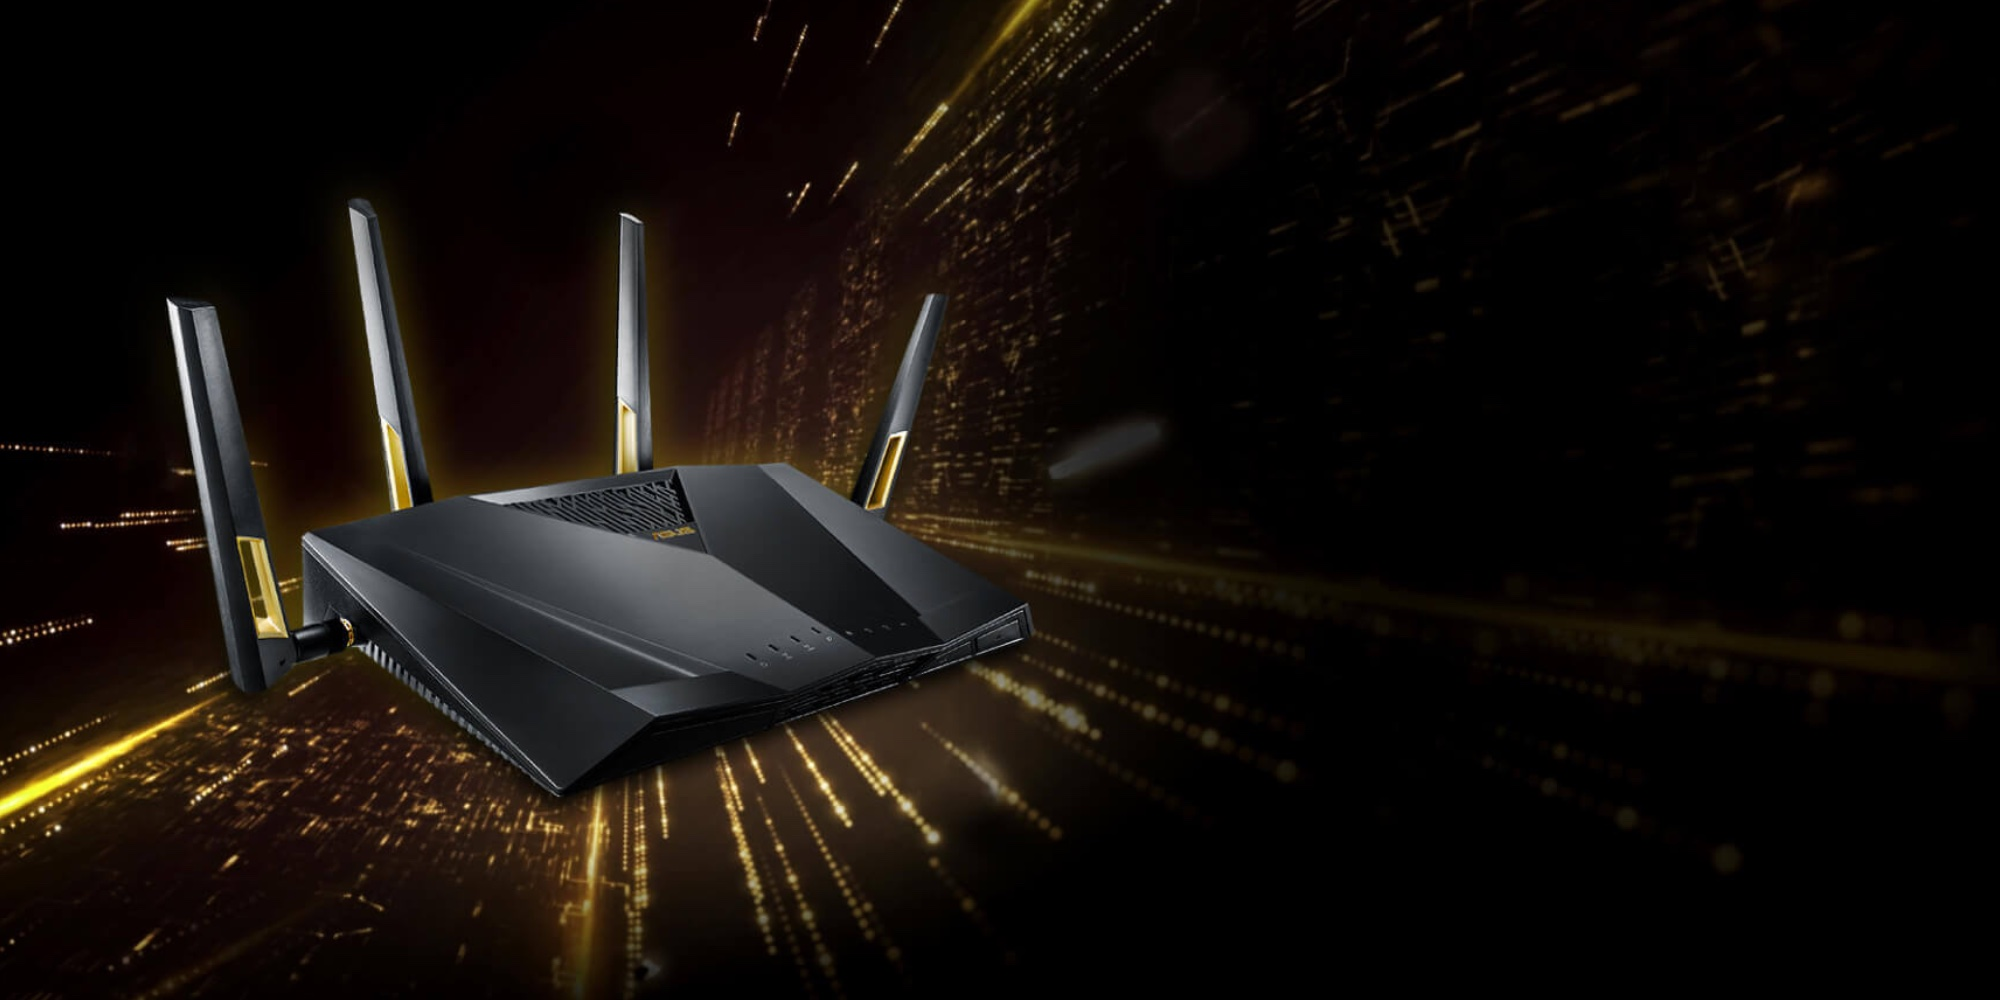 Make the switch to Wi-Fi 6 w/ this ASUS Dual-Band Router at an all-time low of $290 (Reg. $350), more